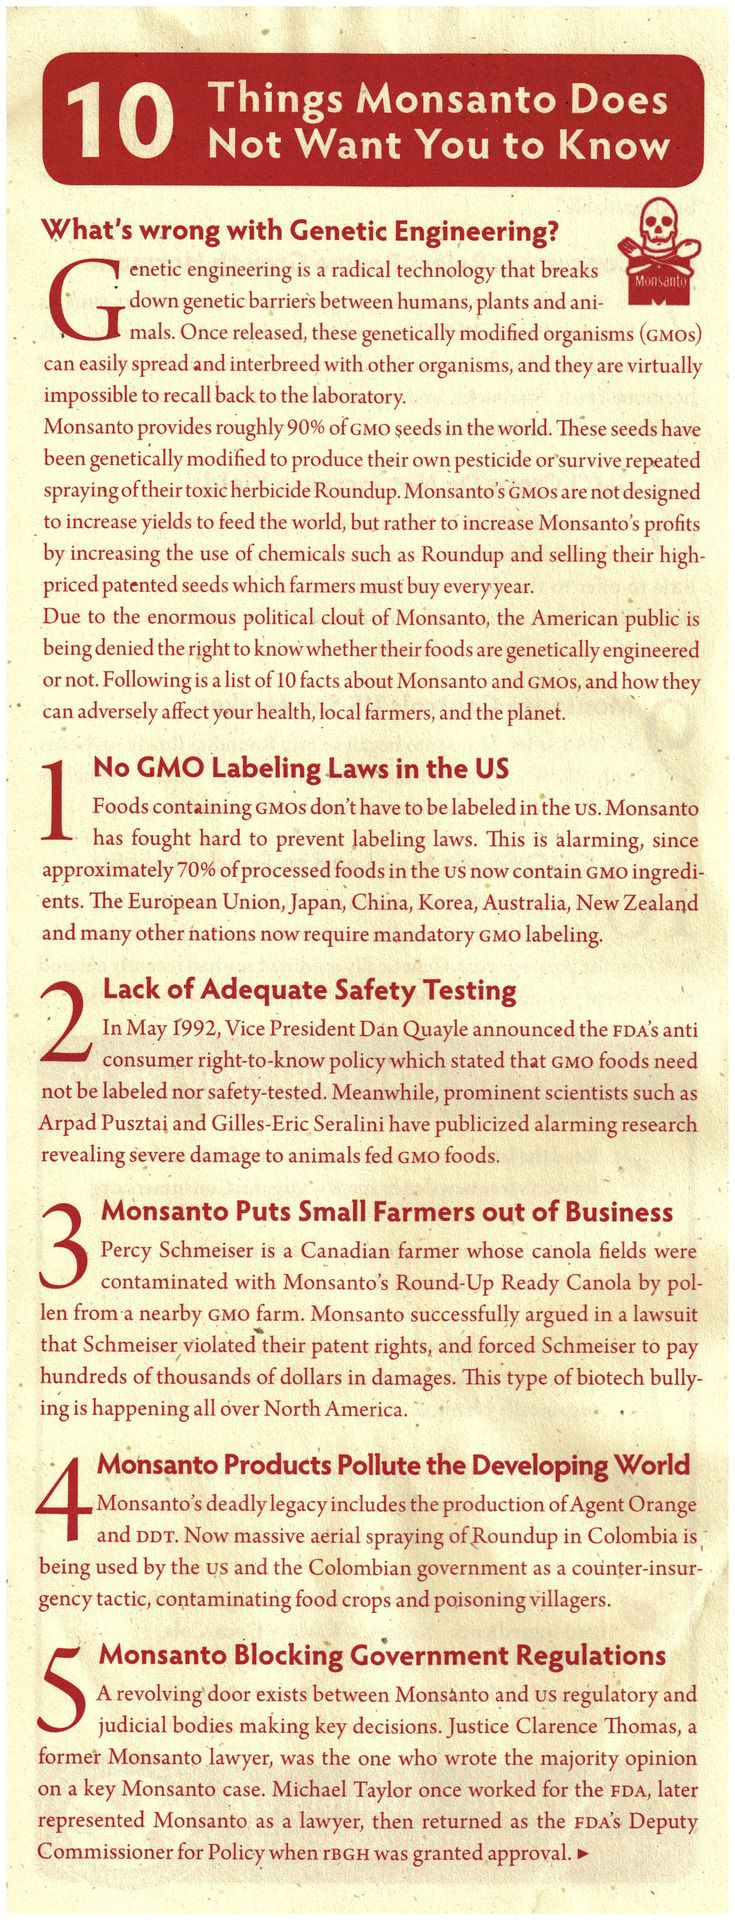 GENETICALLY MODIFIED FOOD: 10 Things Monsanto does Not want you to know .